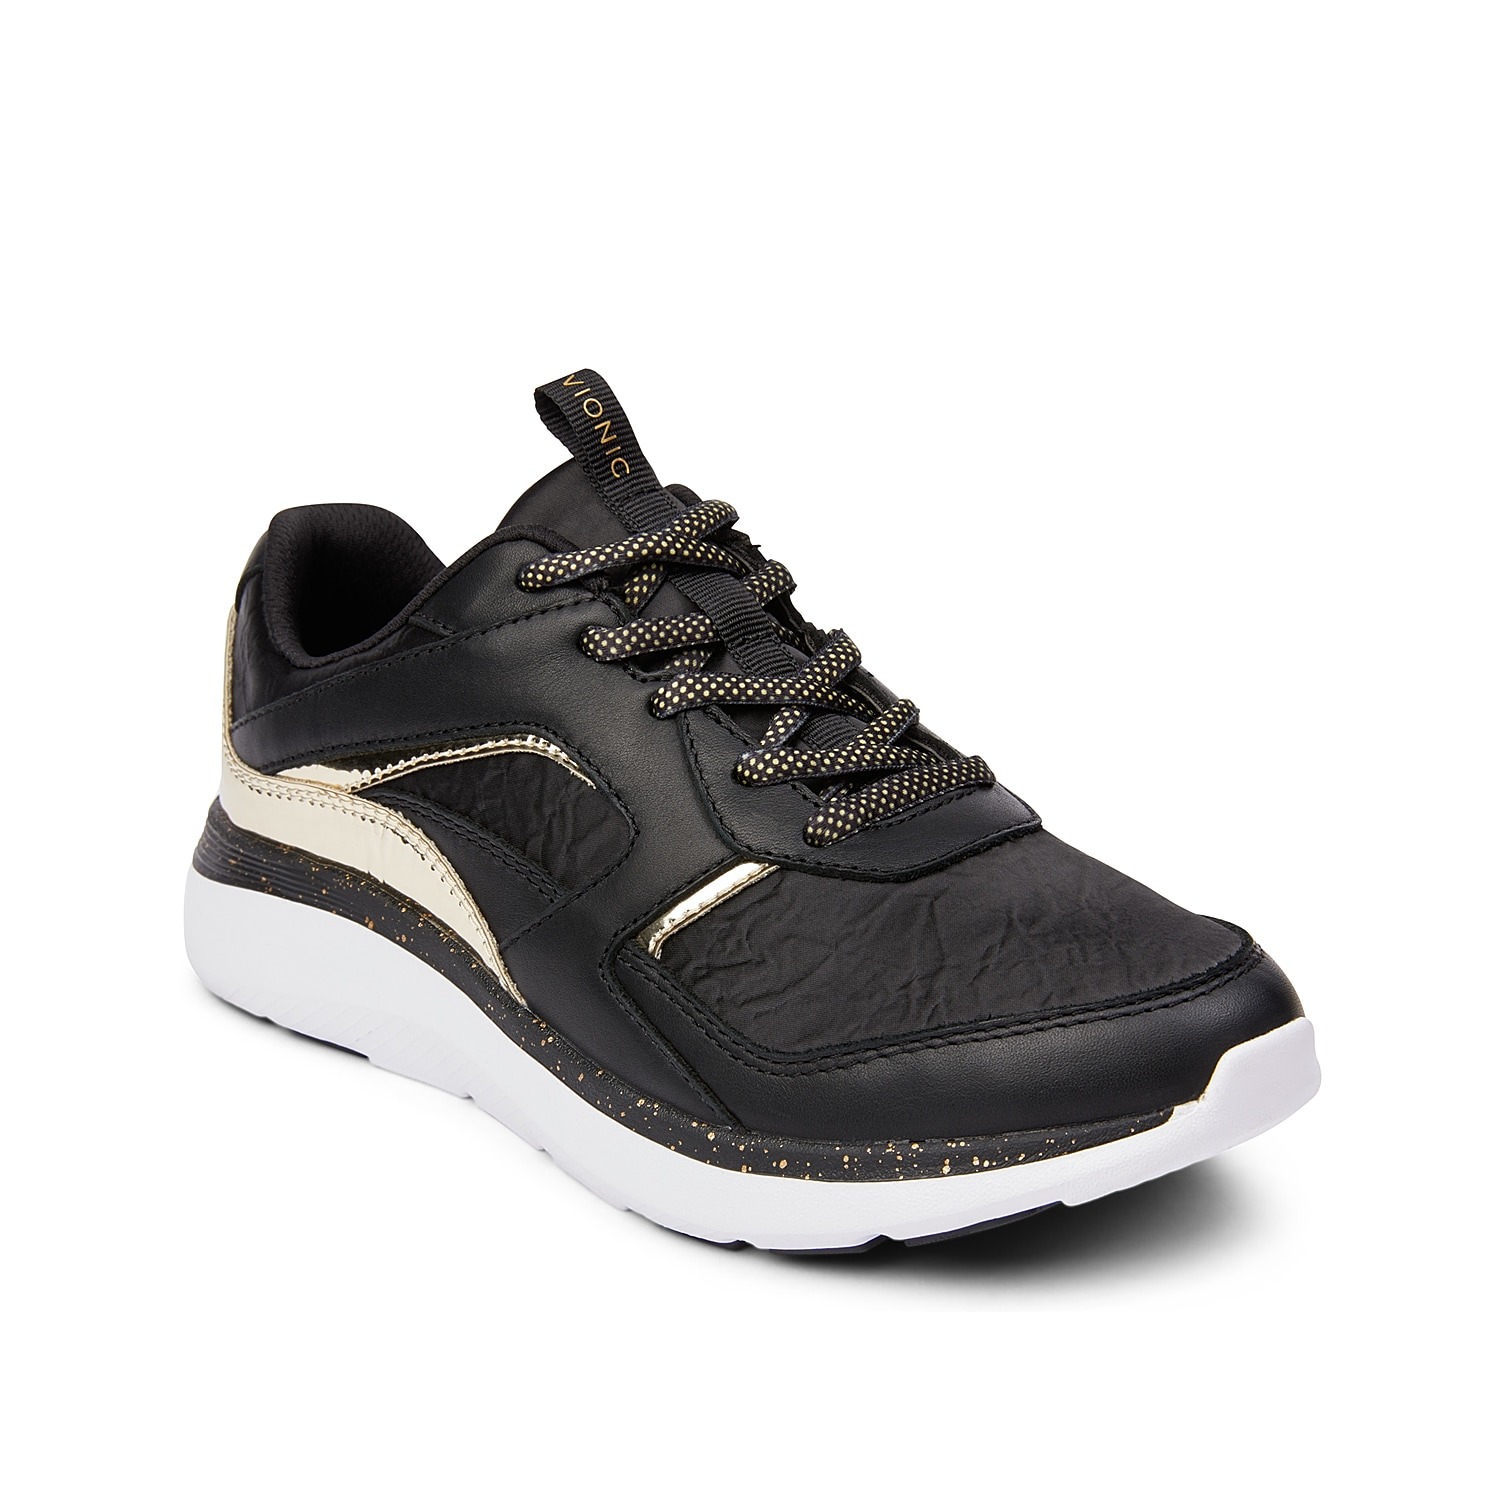 Go the extra mile in the women\\\'s Adela walking shoe from Vionic. This leather sneaker features a removable cushioned insole, thick EVA midsole, and durable rubber sole for lasting support.